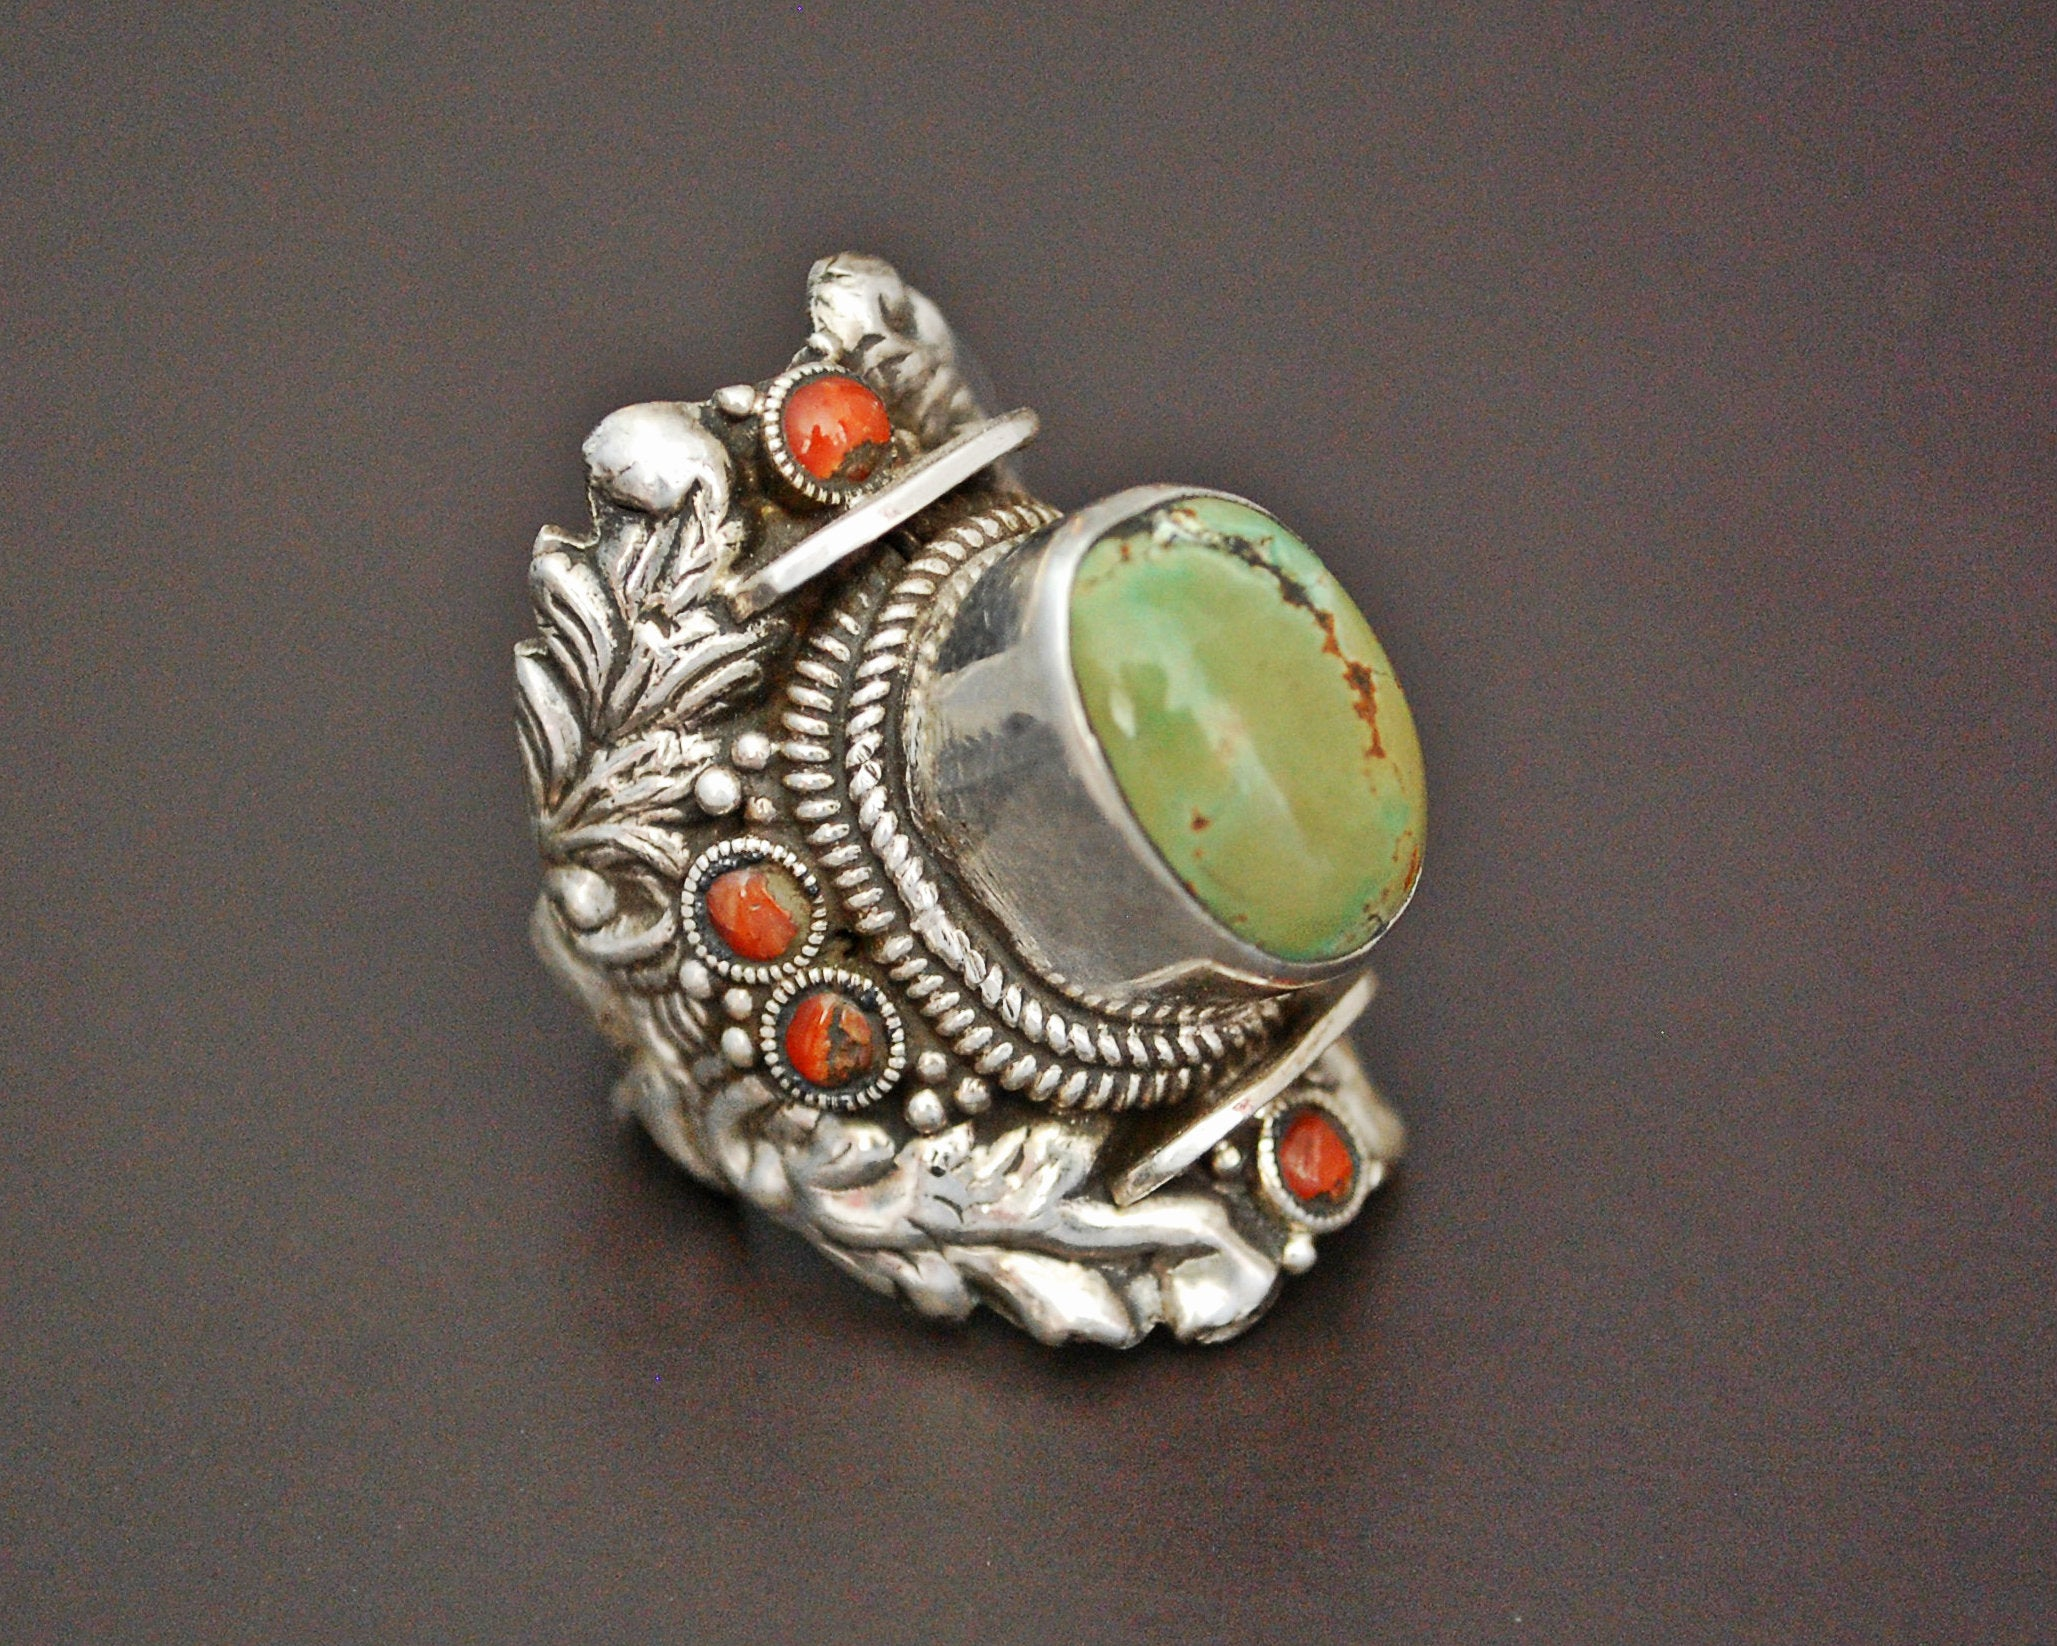 Gorgeous Nepali Turquoise Saddle Ring - Size 8.25